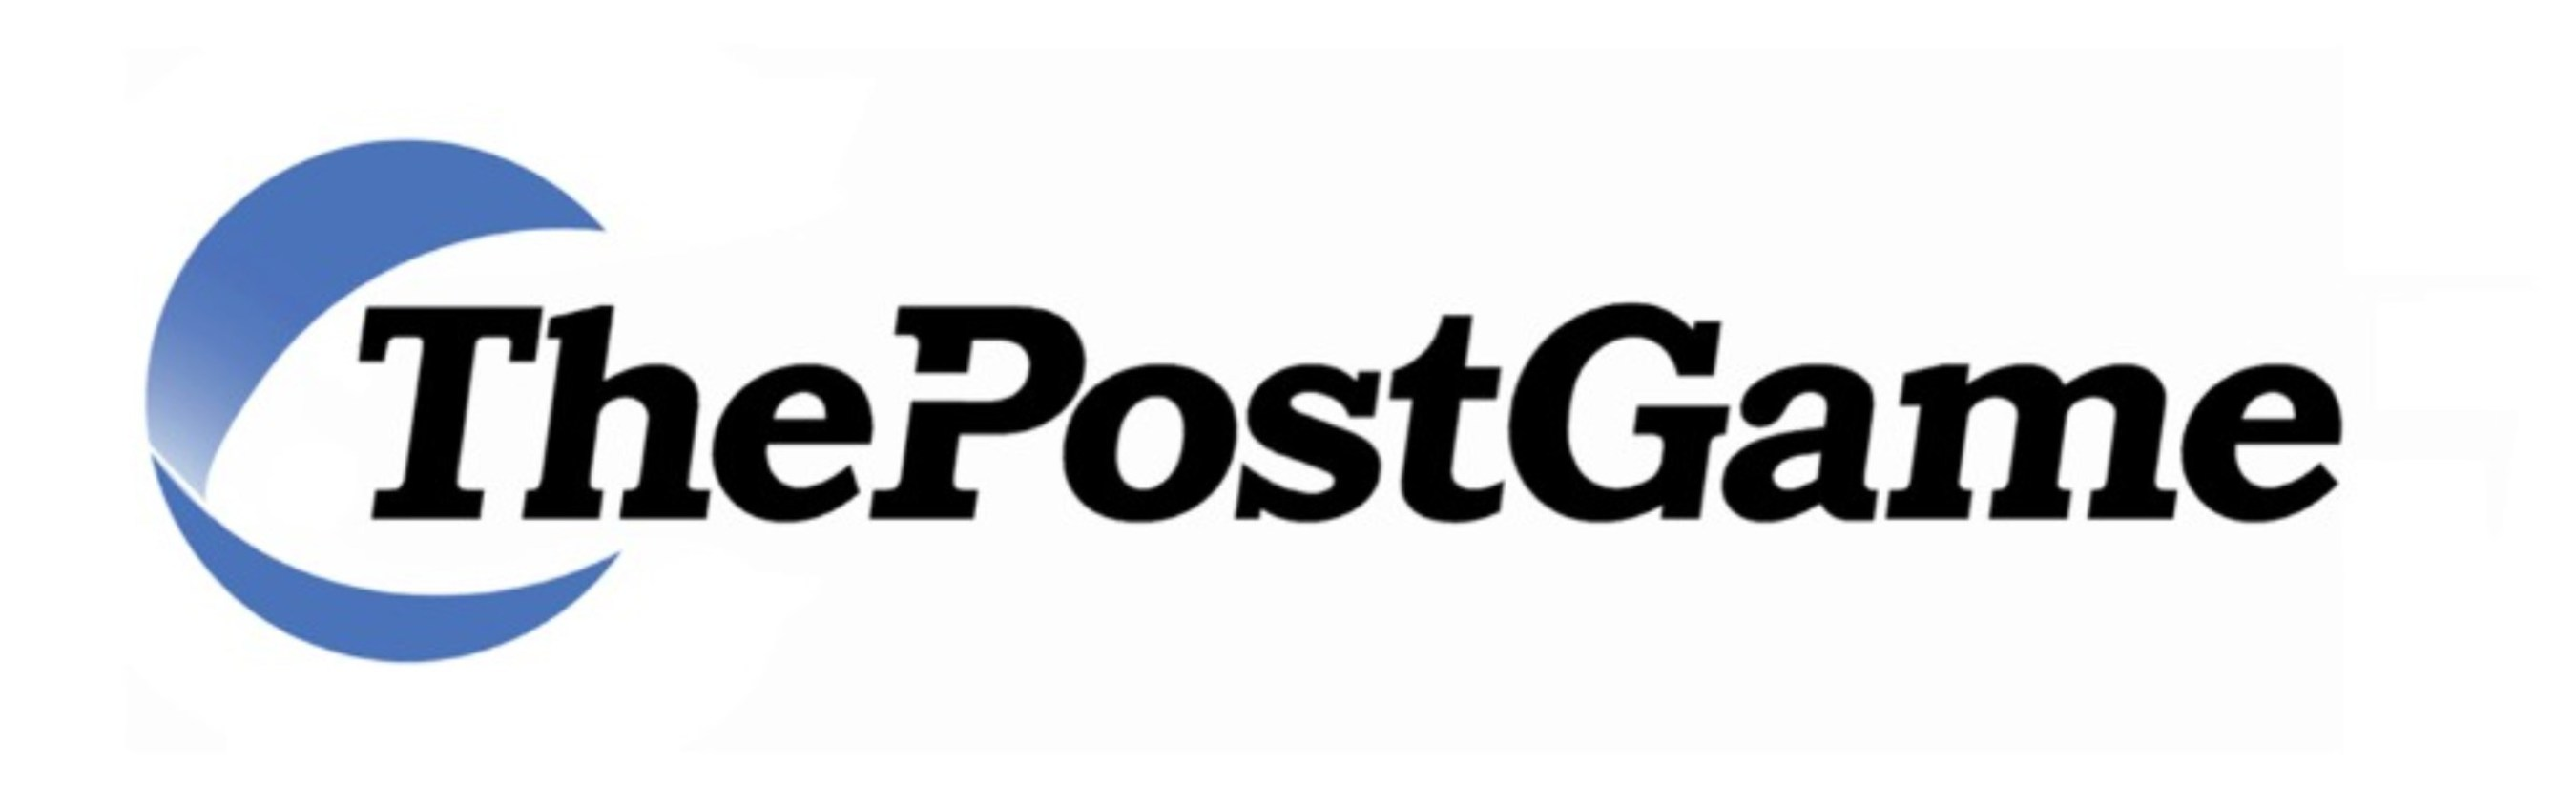 ThePostGame partners with WPP's ESP Properties, launches TPG Studios for brands.